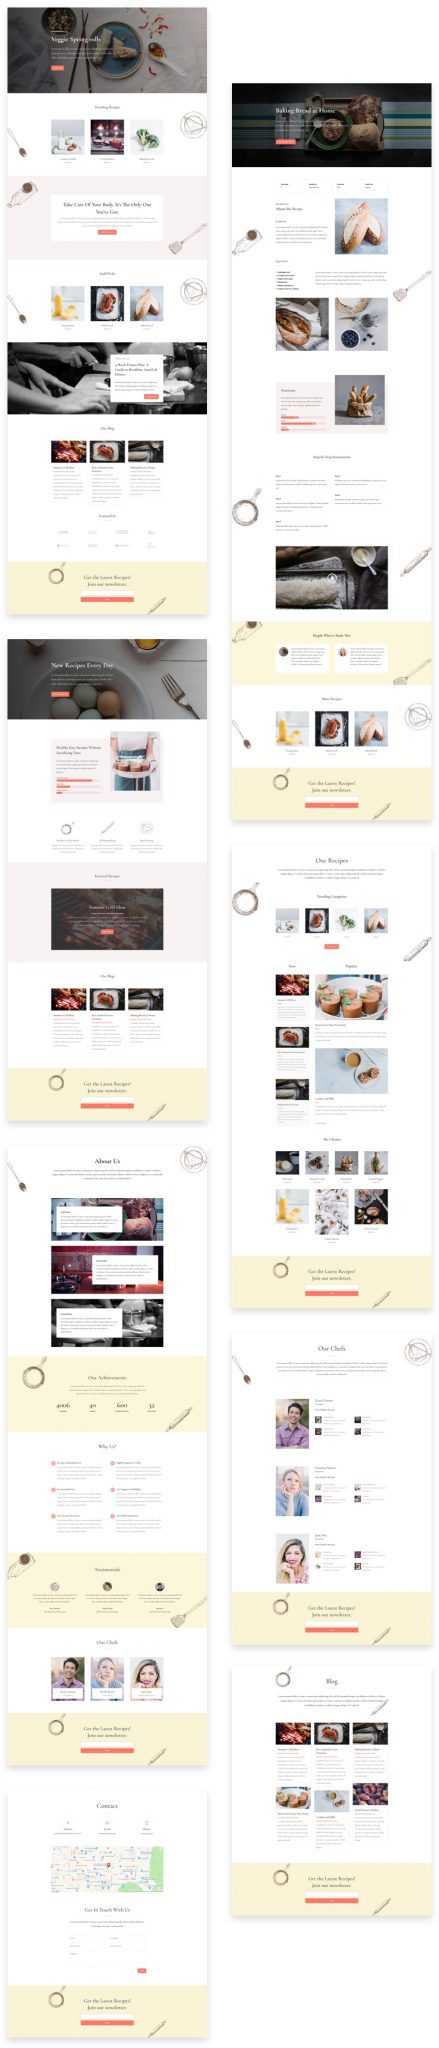 Food Recipes Divi Layout Pack